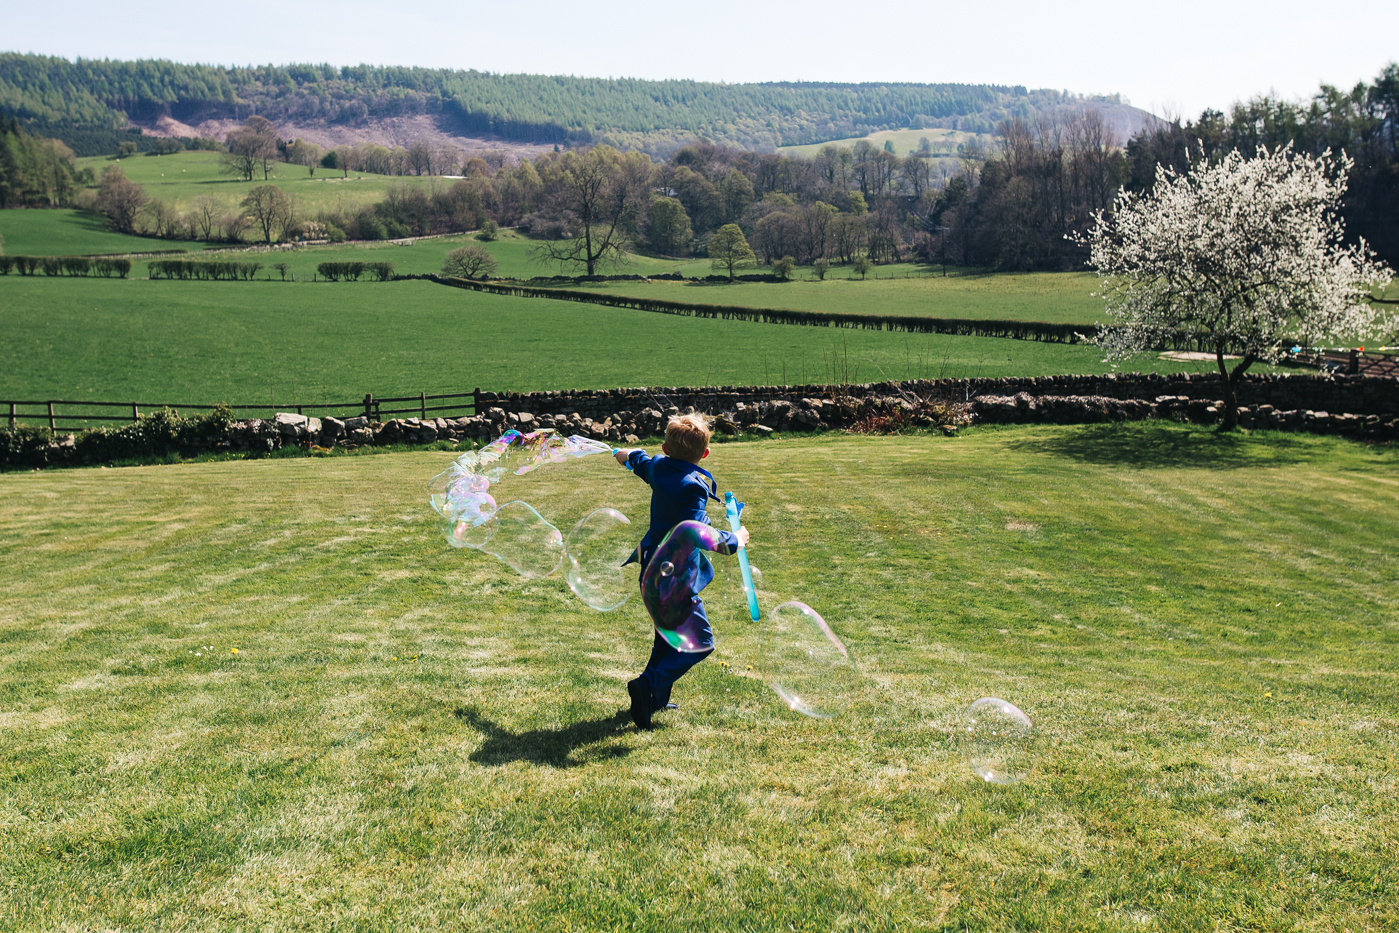 a boy creates huge bubbles on the grass. wedding at laskill house north yorkshire helmsley wedding photographer north east teesside